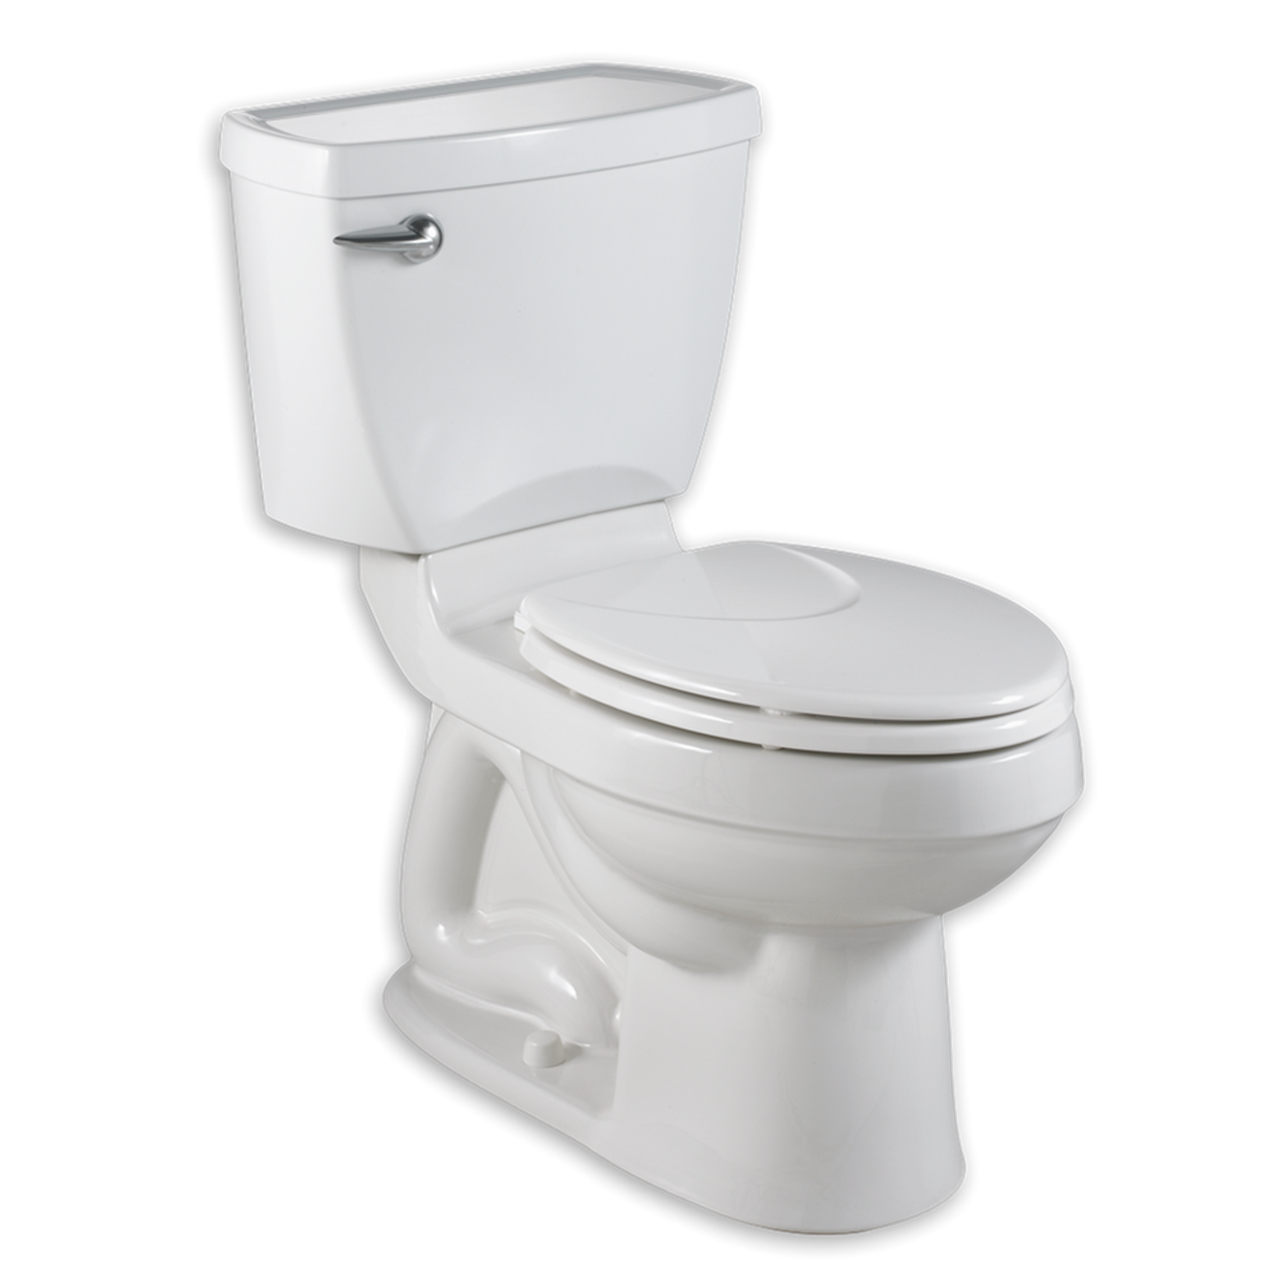 Toilet bowl png. Champion right height elongated